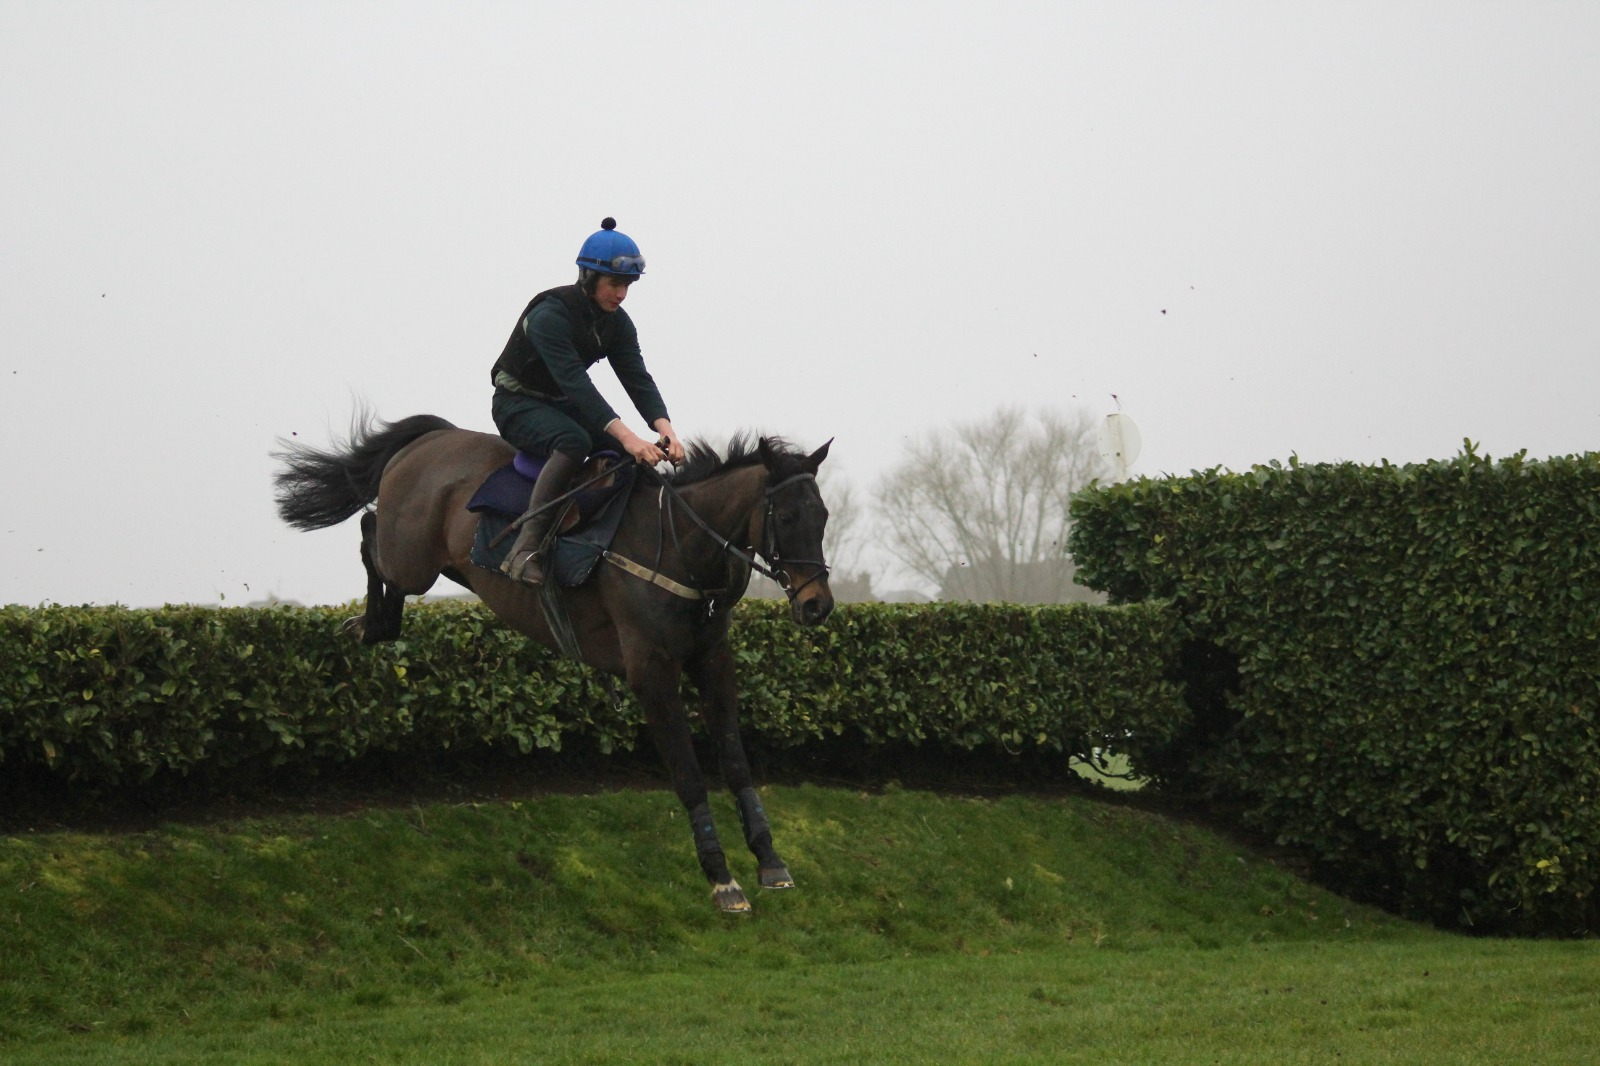 Vivas cross country schooling around Cheltenham before his debut!